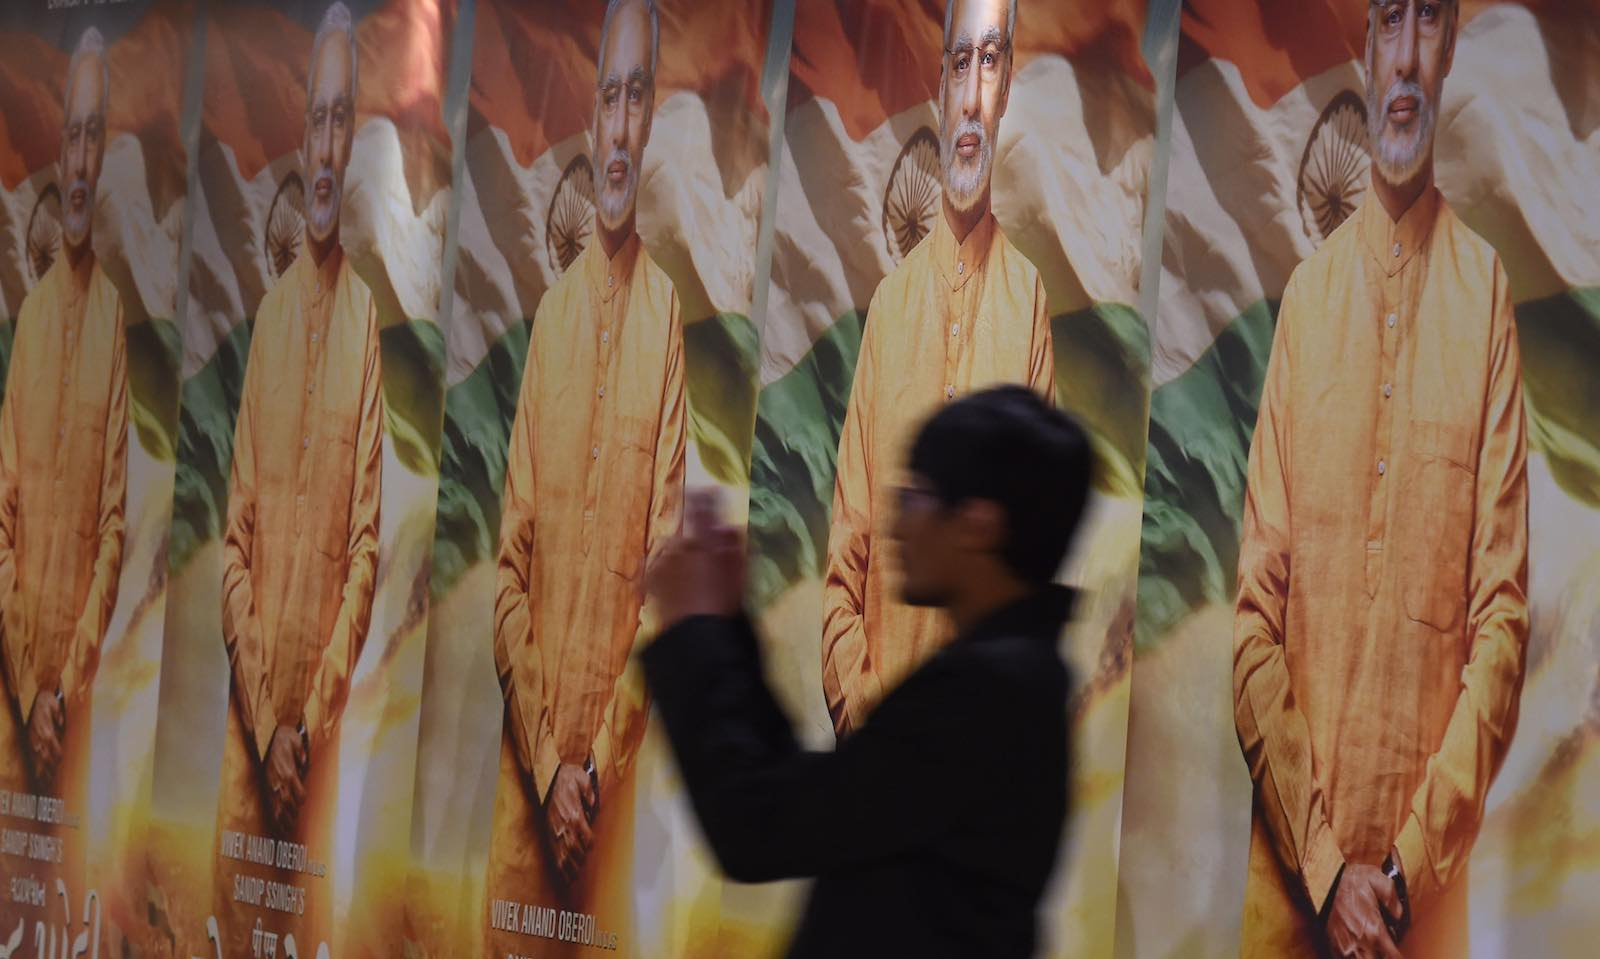 Poster displays for the forthcoming Modi biopic (Photo: Indranil Mukherjee via Getty)